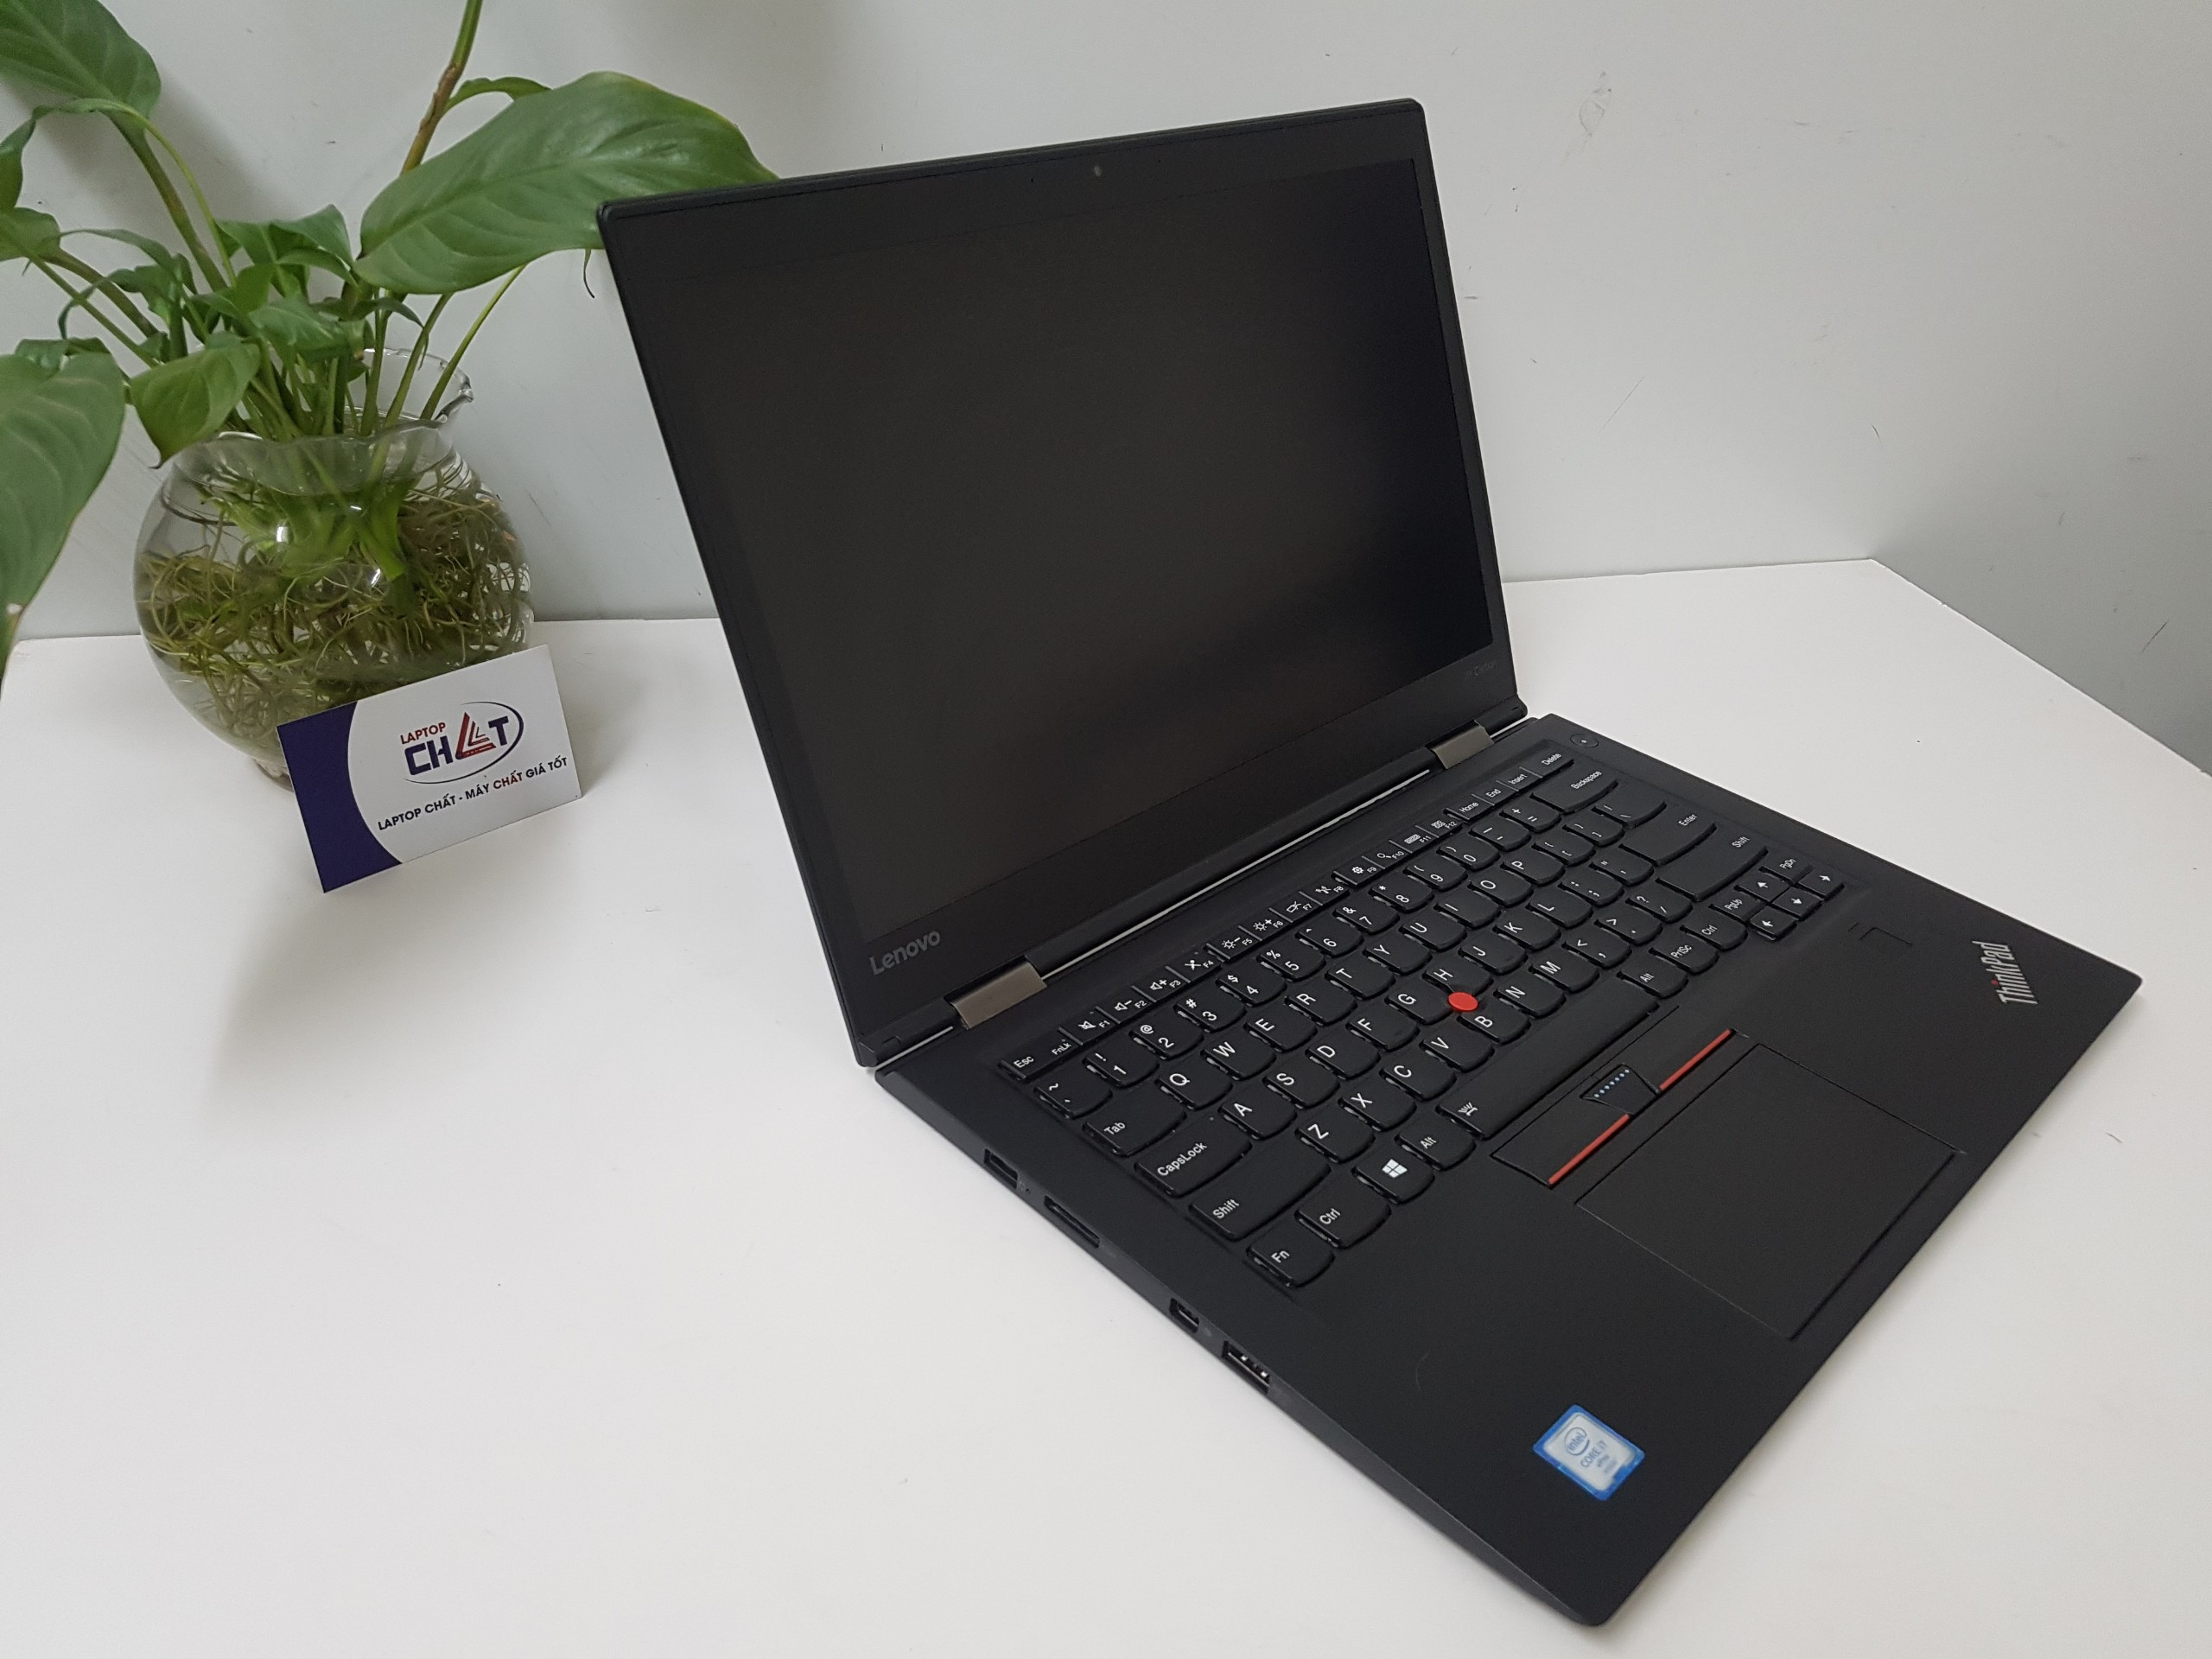 ThinkPad X1 Carbon gen 4 -2